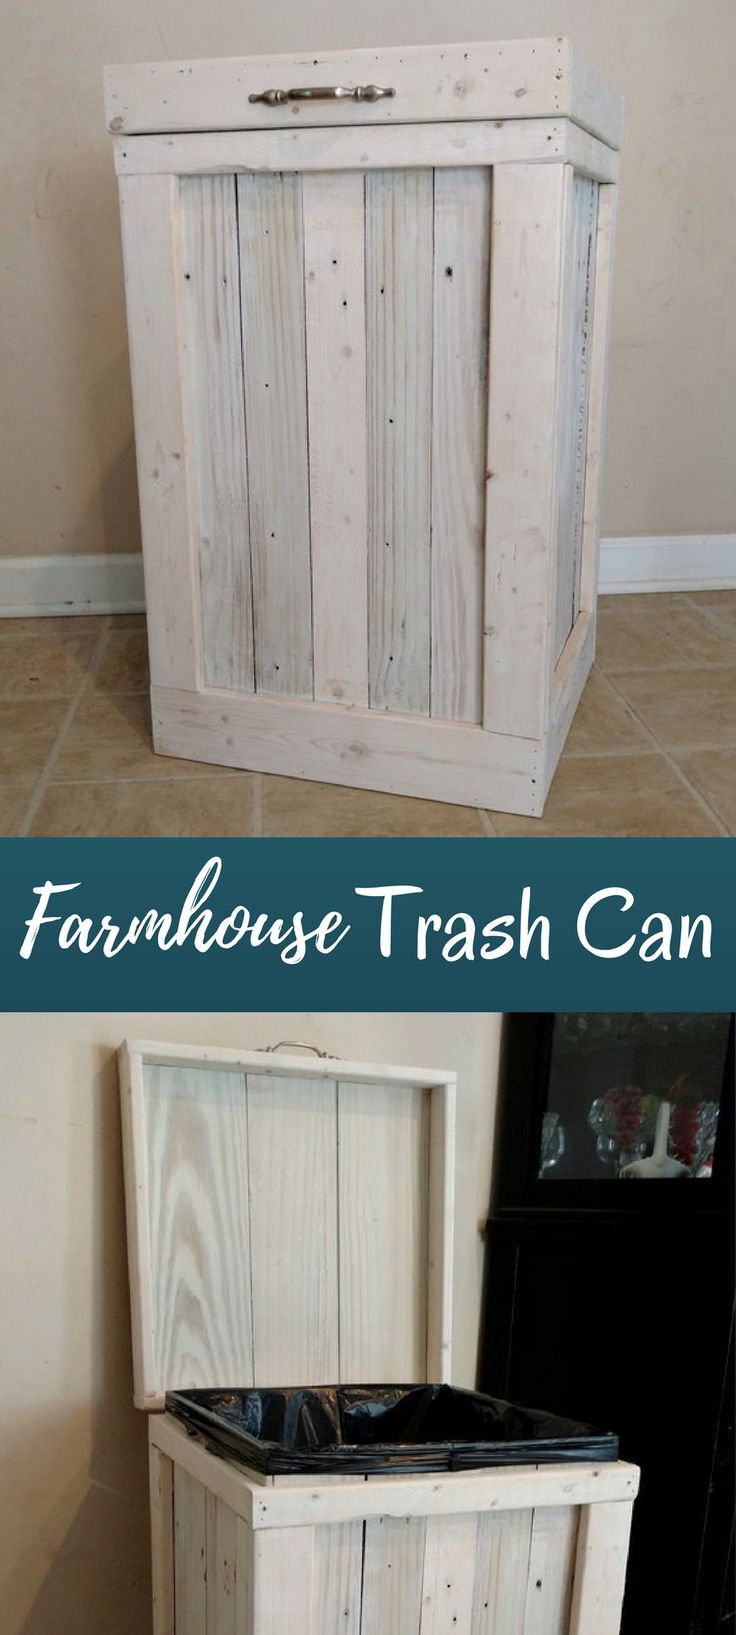 I've been looking for a trash can that had a farmhouse style look.  This is perfect.  #ad